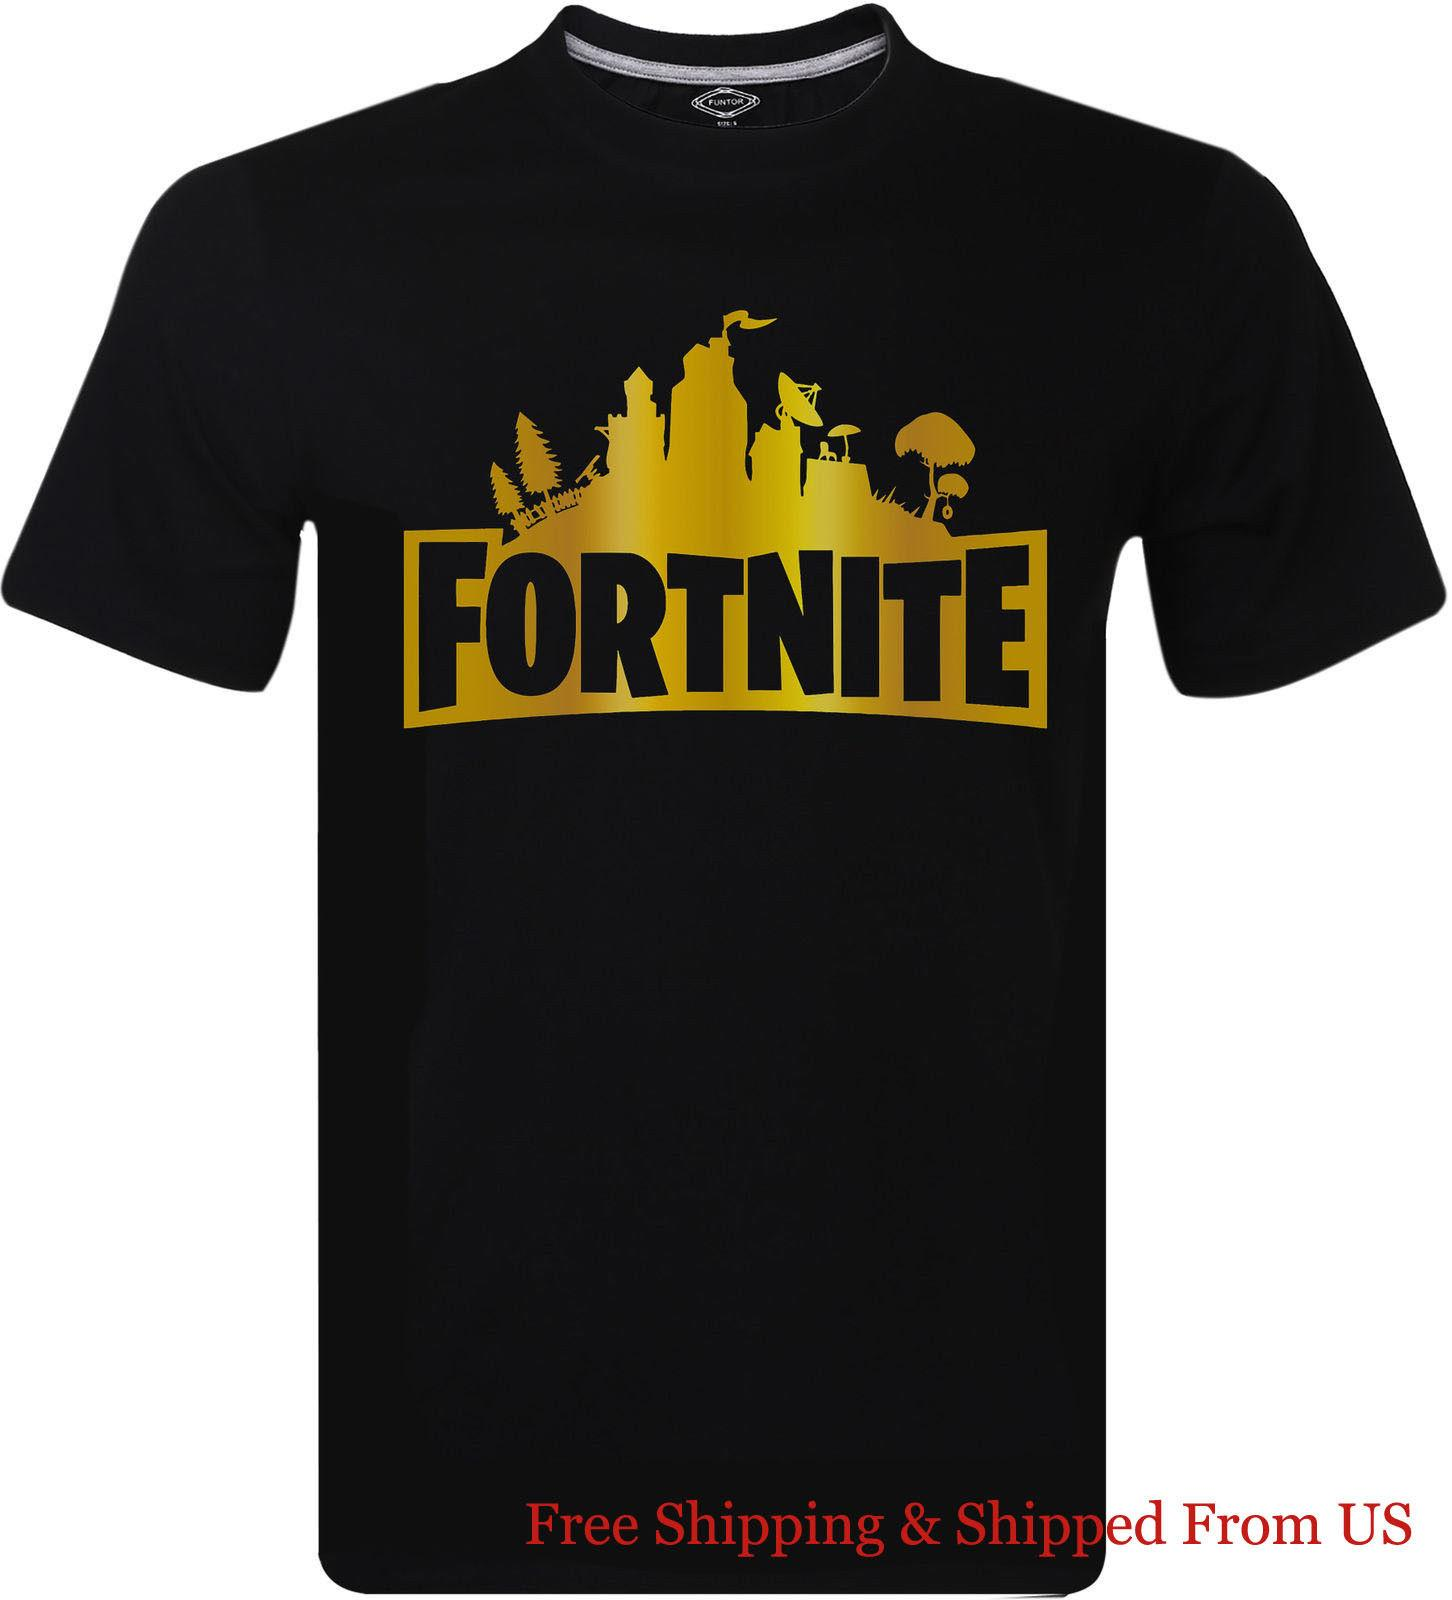 d4e595c6c60 Fortnite Gold Cool Logo Battle Royale Xbox Gaming Gamer T Shirt Men S Tee  Fashion Wholesale 2018 Funny Tee Casual Short Sleeve Random Funny T Shirts  Clever ...